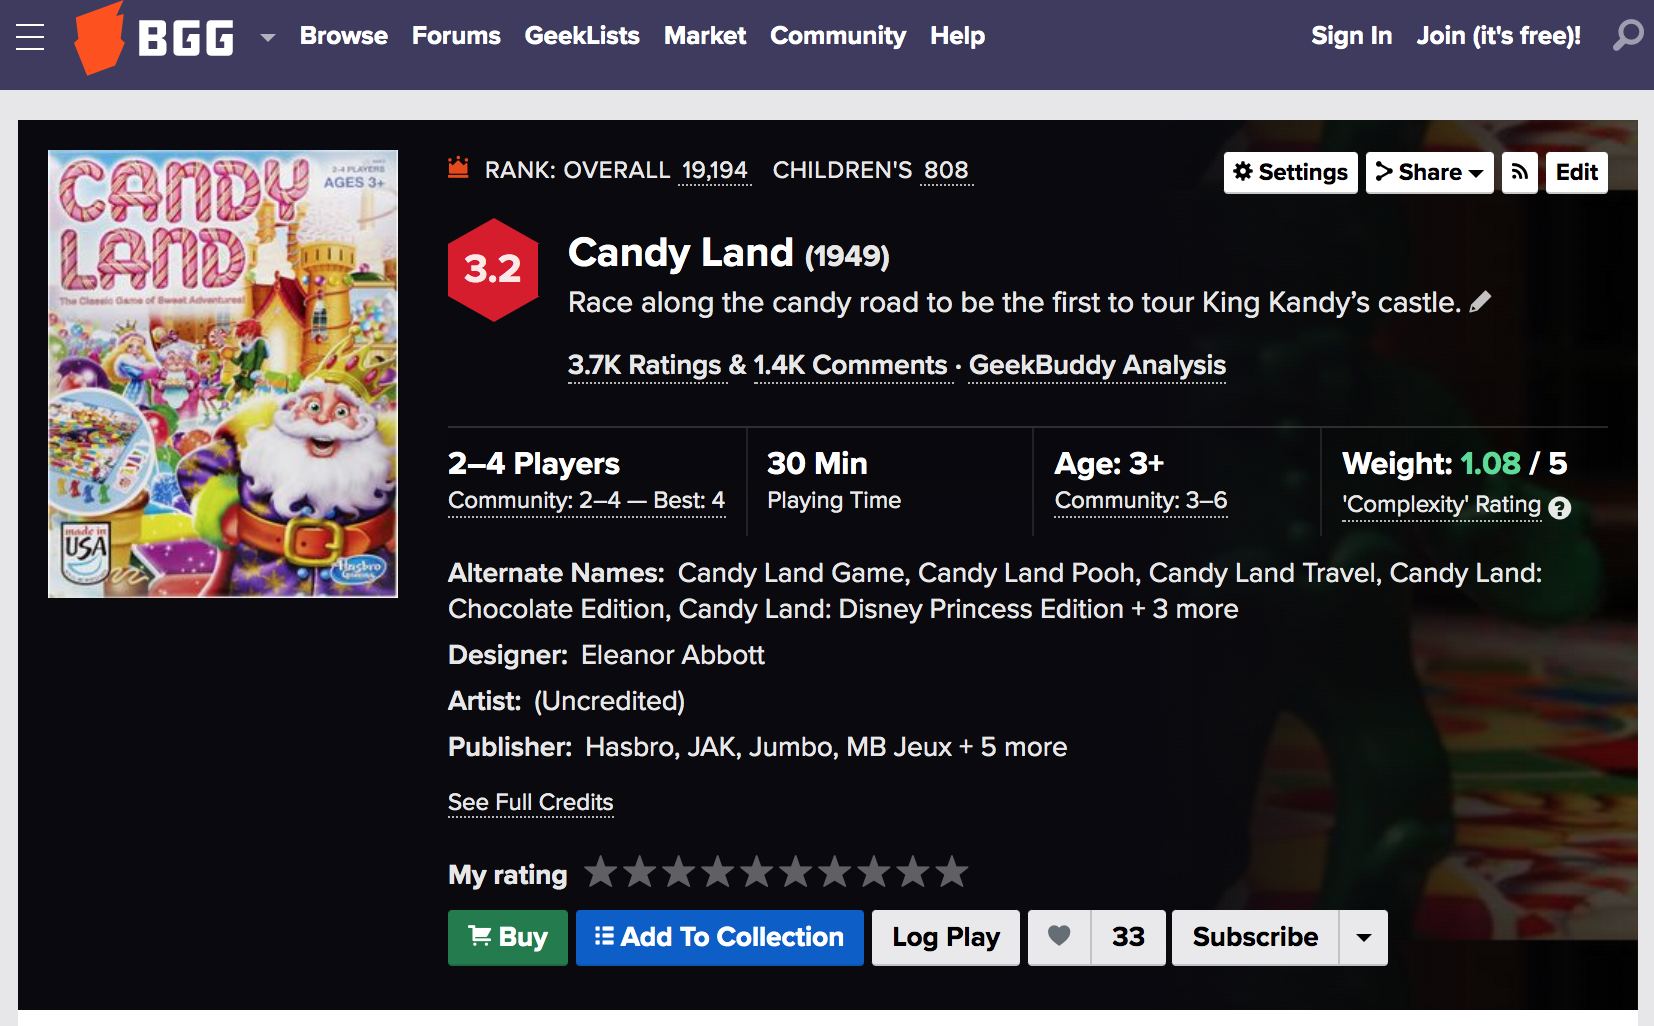 BoardGameGeek's page for Candyland, which has a 3.2 rating.